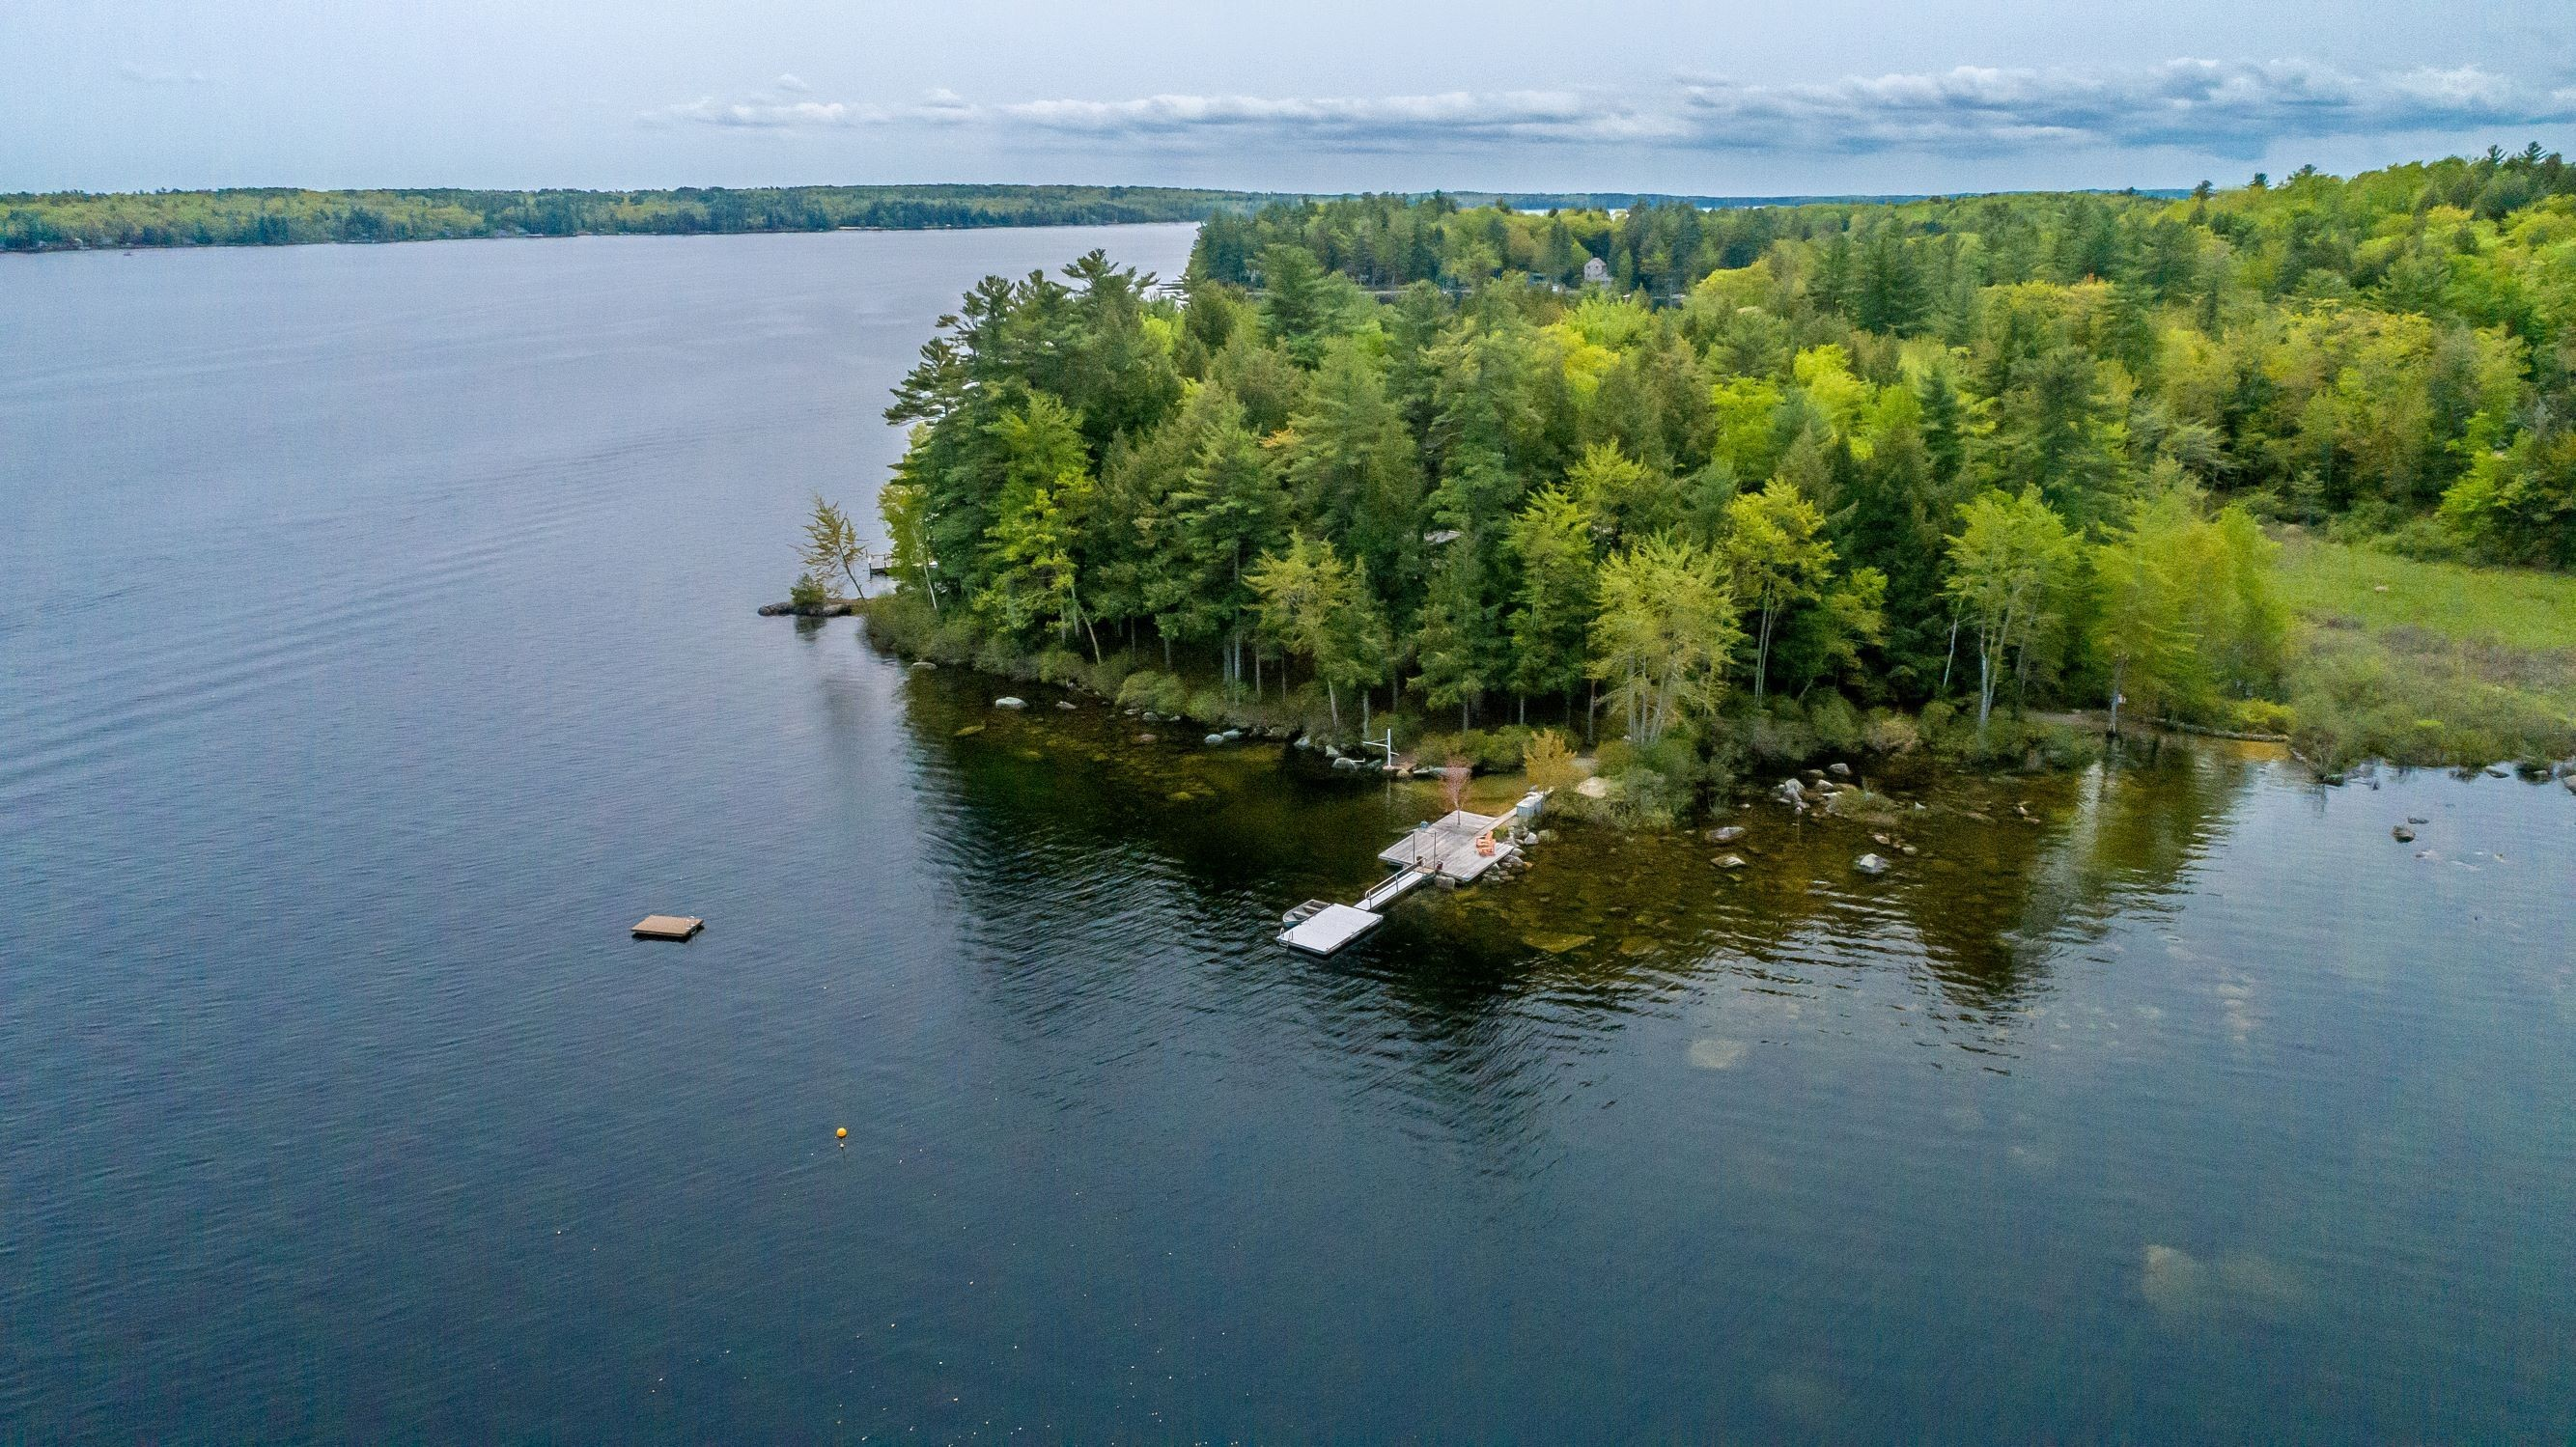 83 quarry cove road a luxury single family home for sale in raymond, maine property id 347669082 christie s international real estate